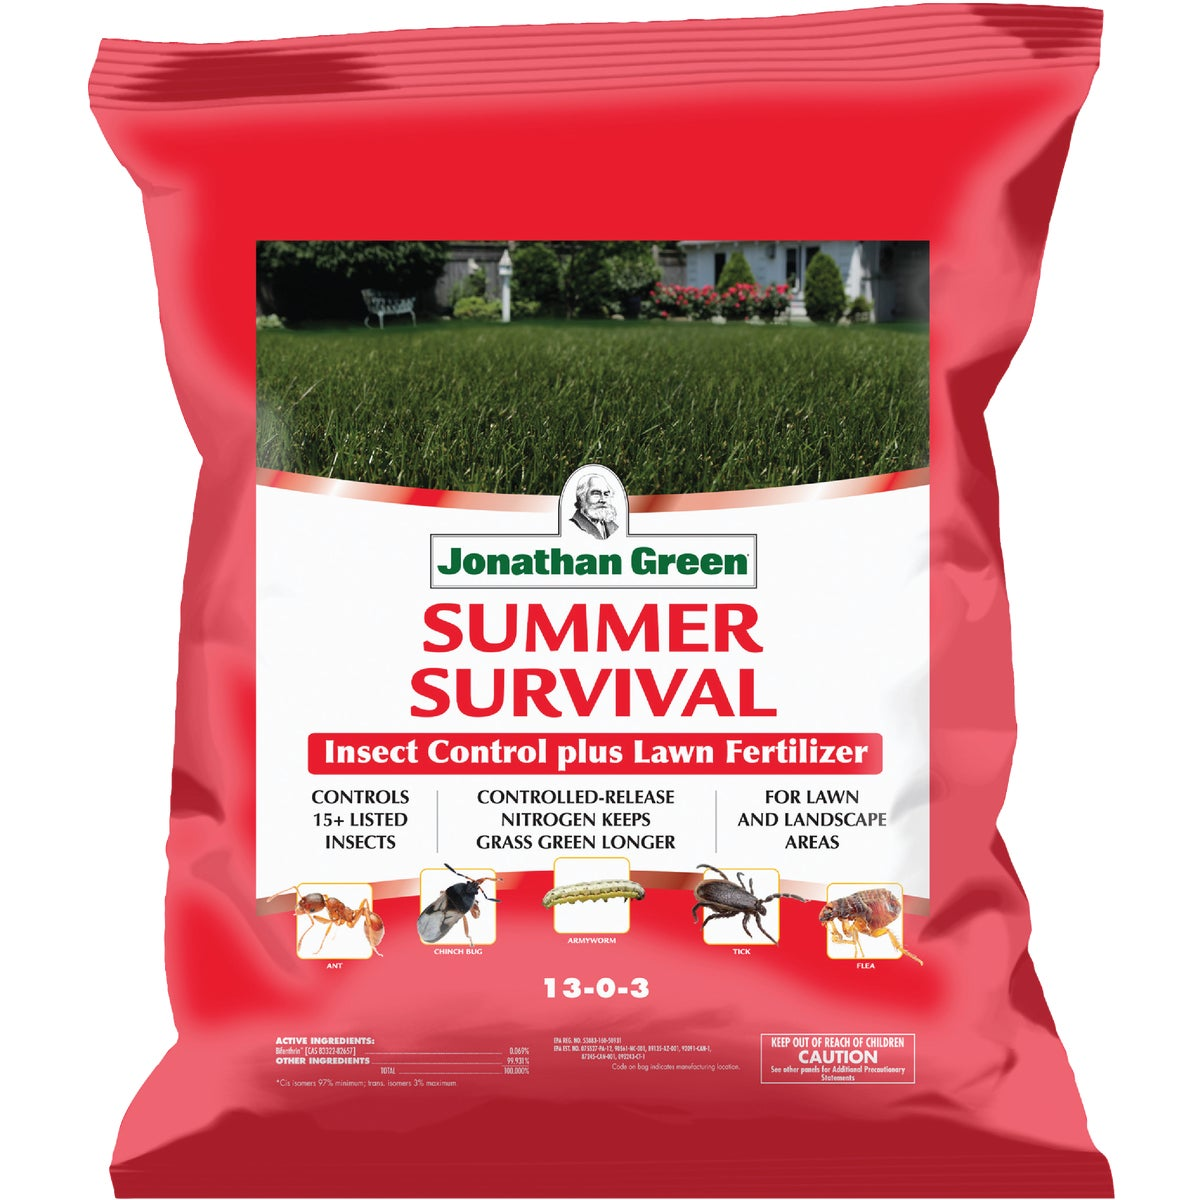 5M SUMR SURV FERTILIZER - 12011 by Jonathan Green